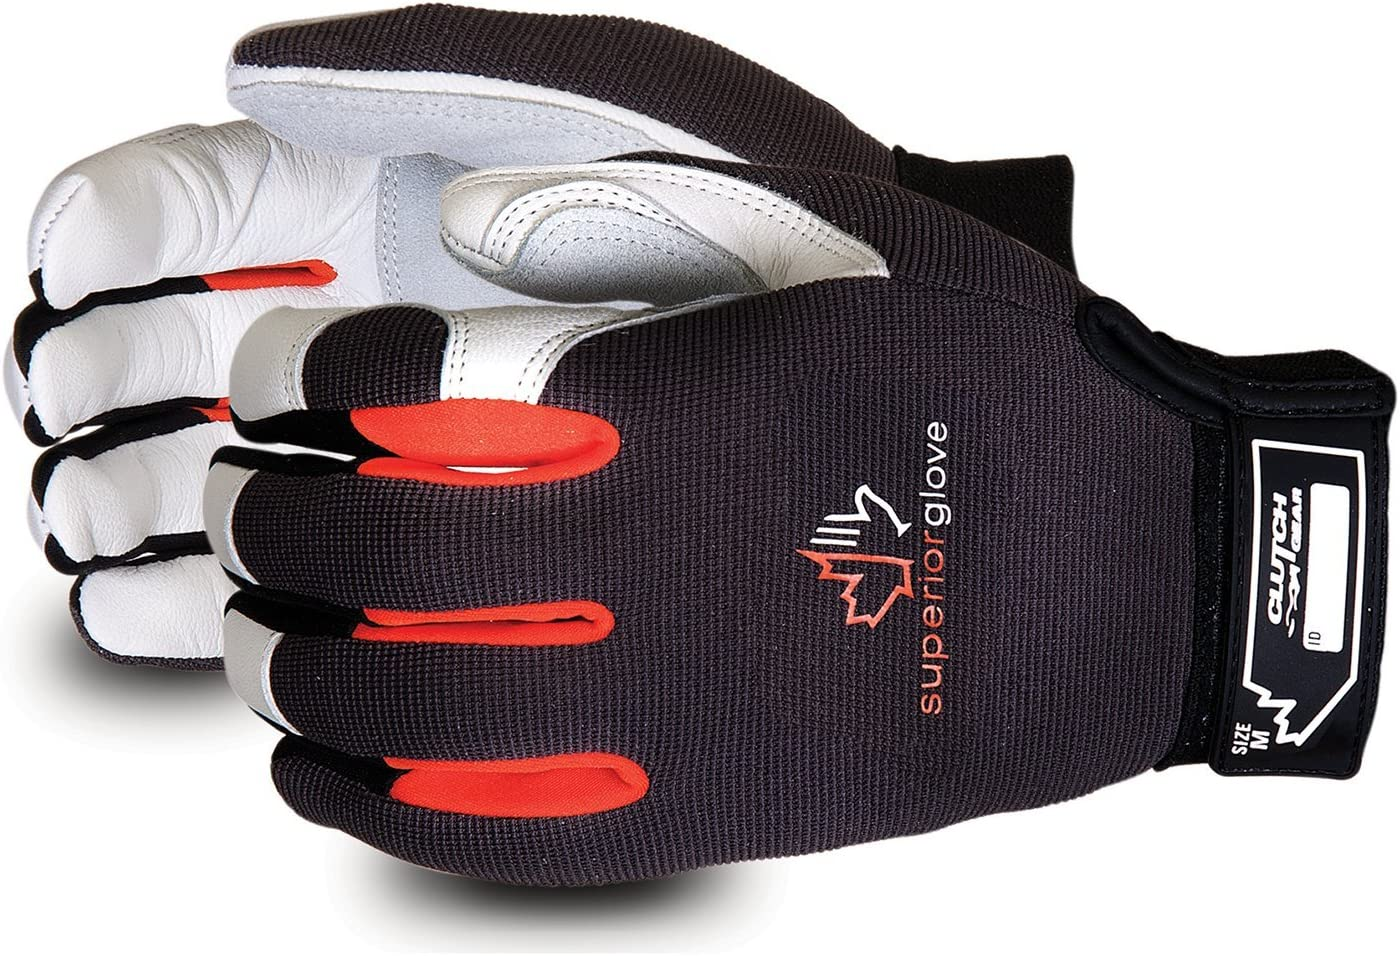 Superior Clutch Gear Grain Goatskin Leather Mechanics Gloves with Thumb Patch - MXGCE - (1 Pair of Small Work Gloves)